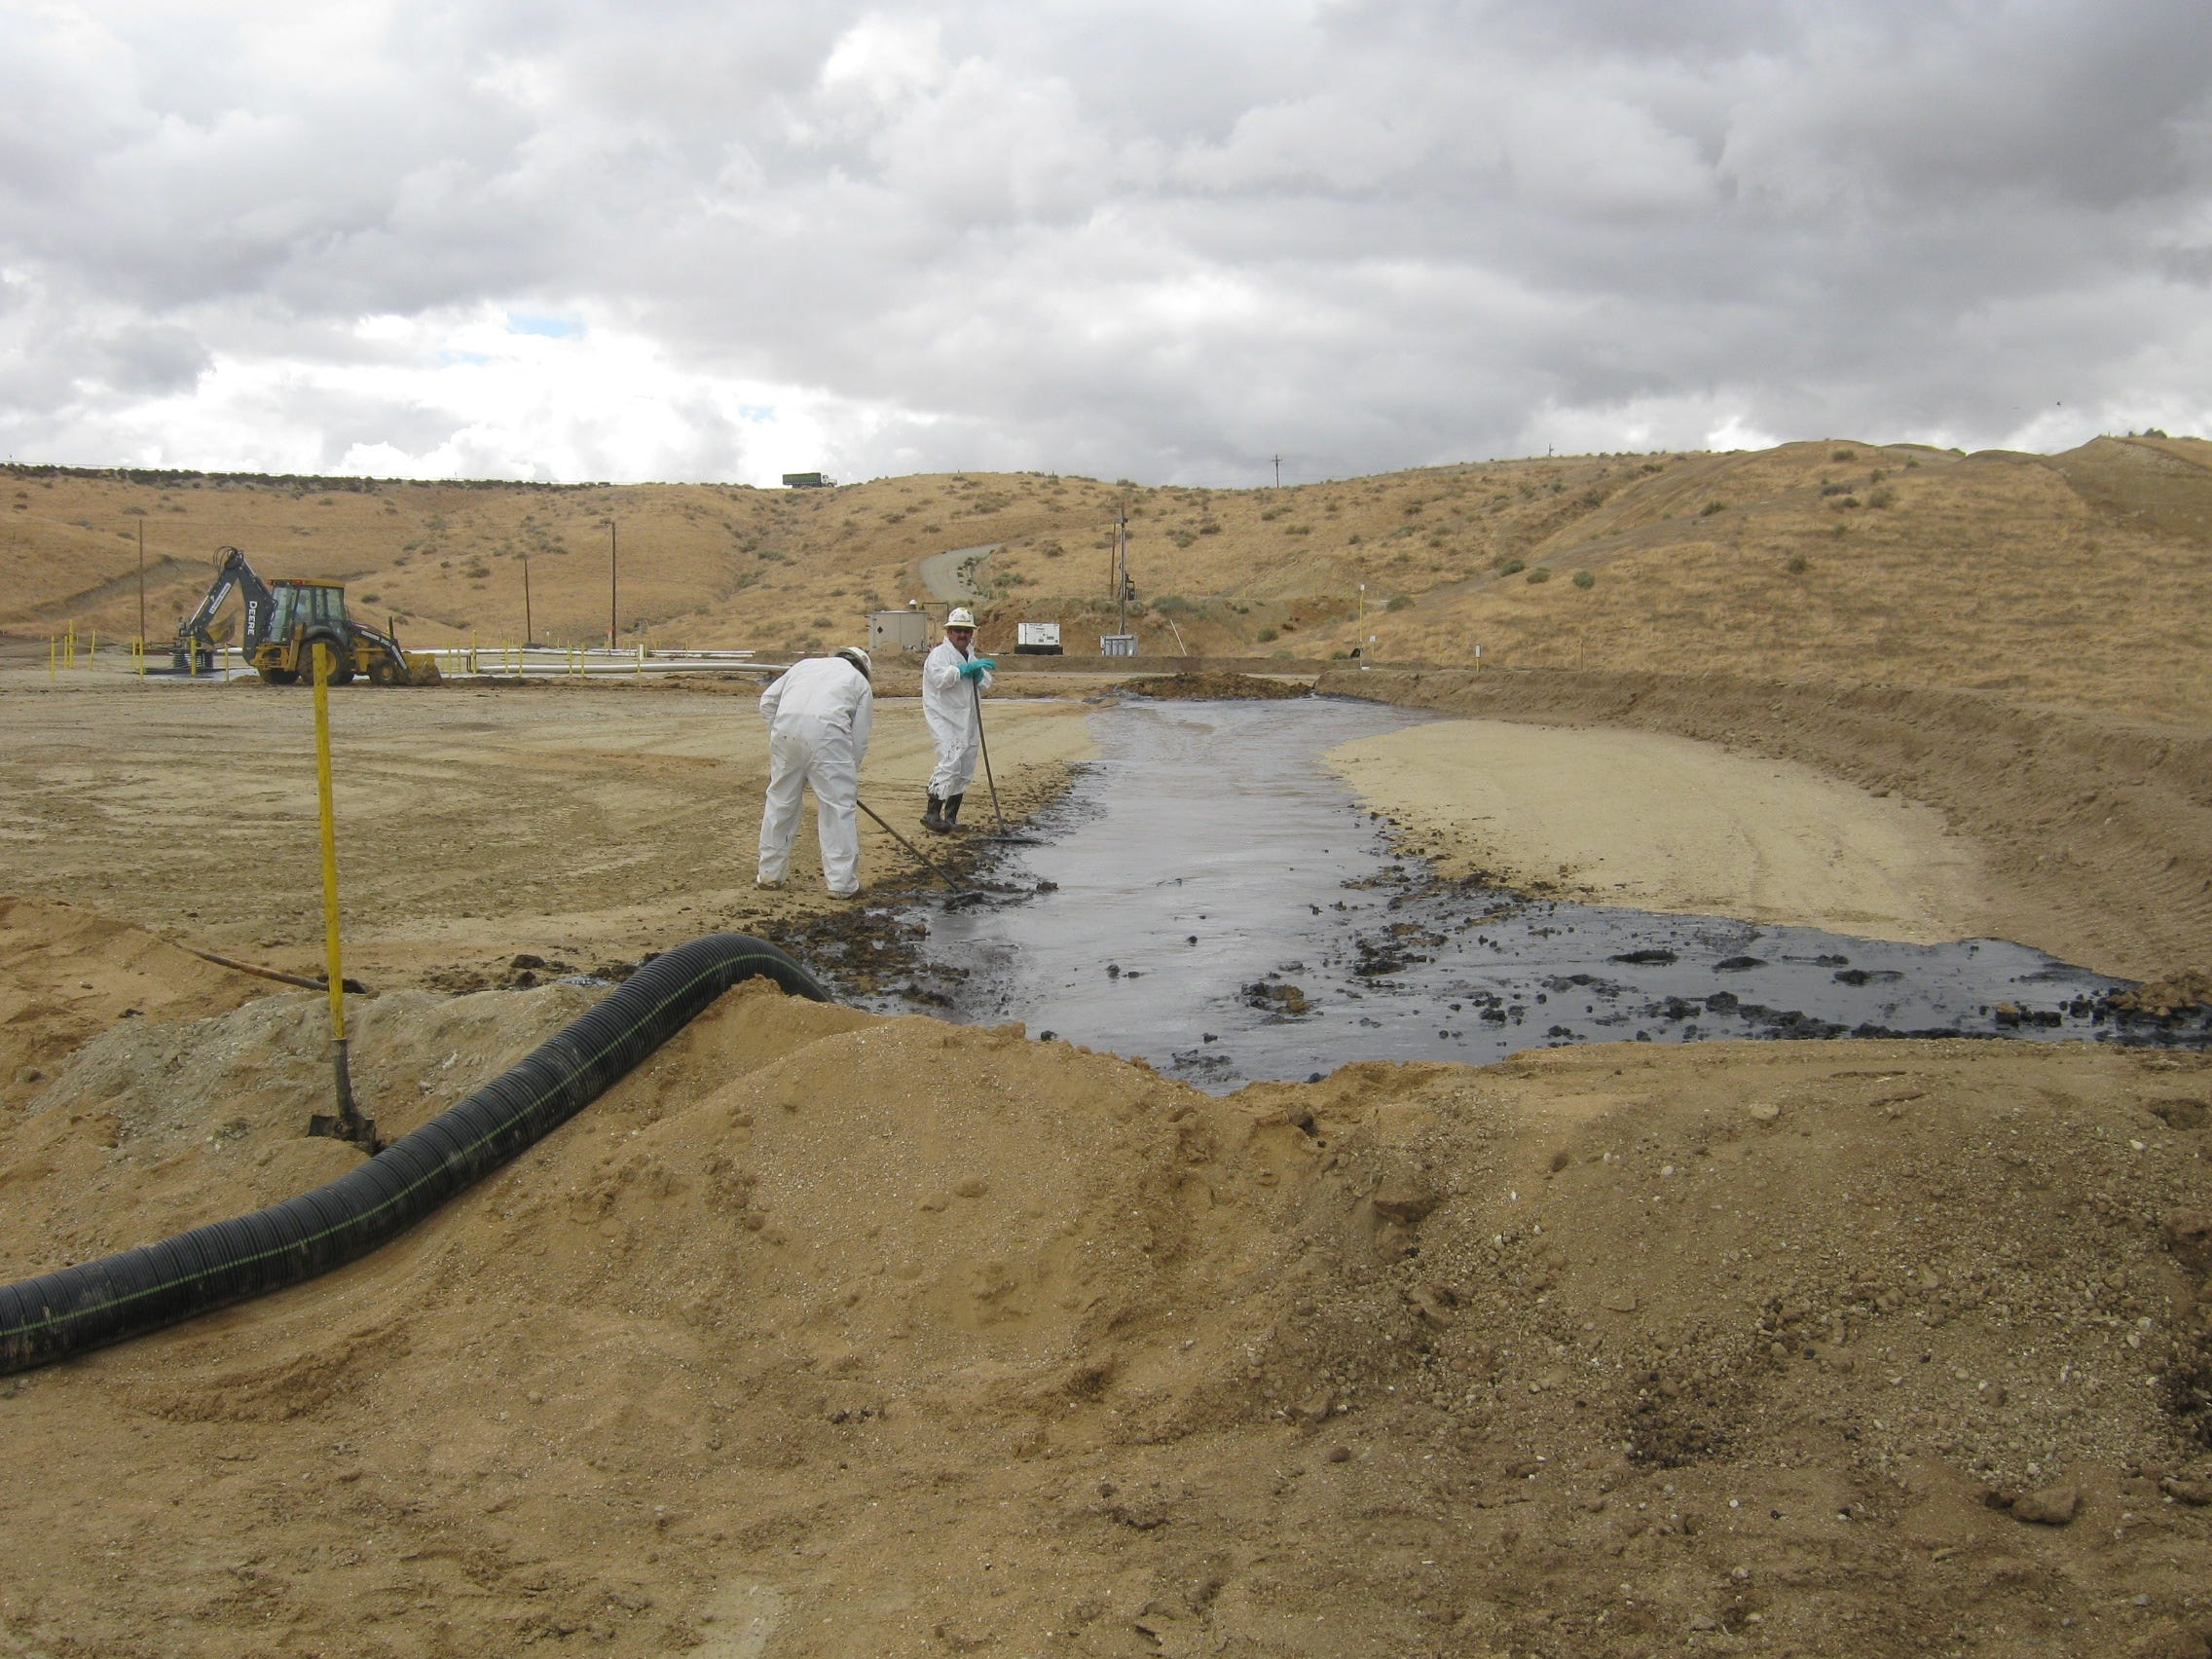 Workers clean up a surface expression in October 2011 in a Kern County oil field, where Berry Petroleum operated. Oil spills can pose long- and short-term health risks for workers.